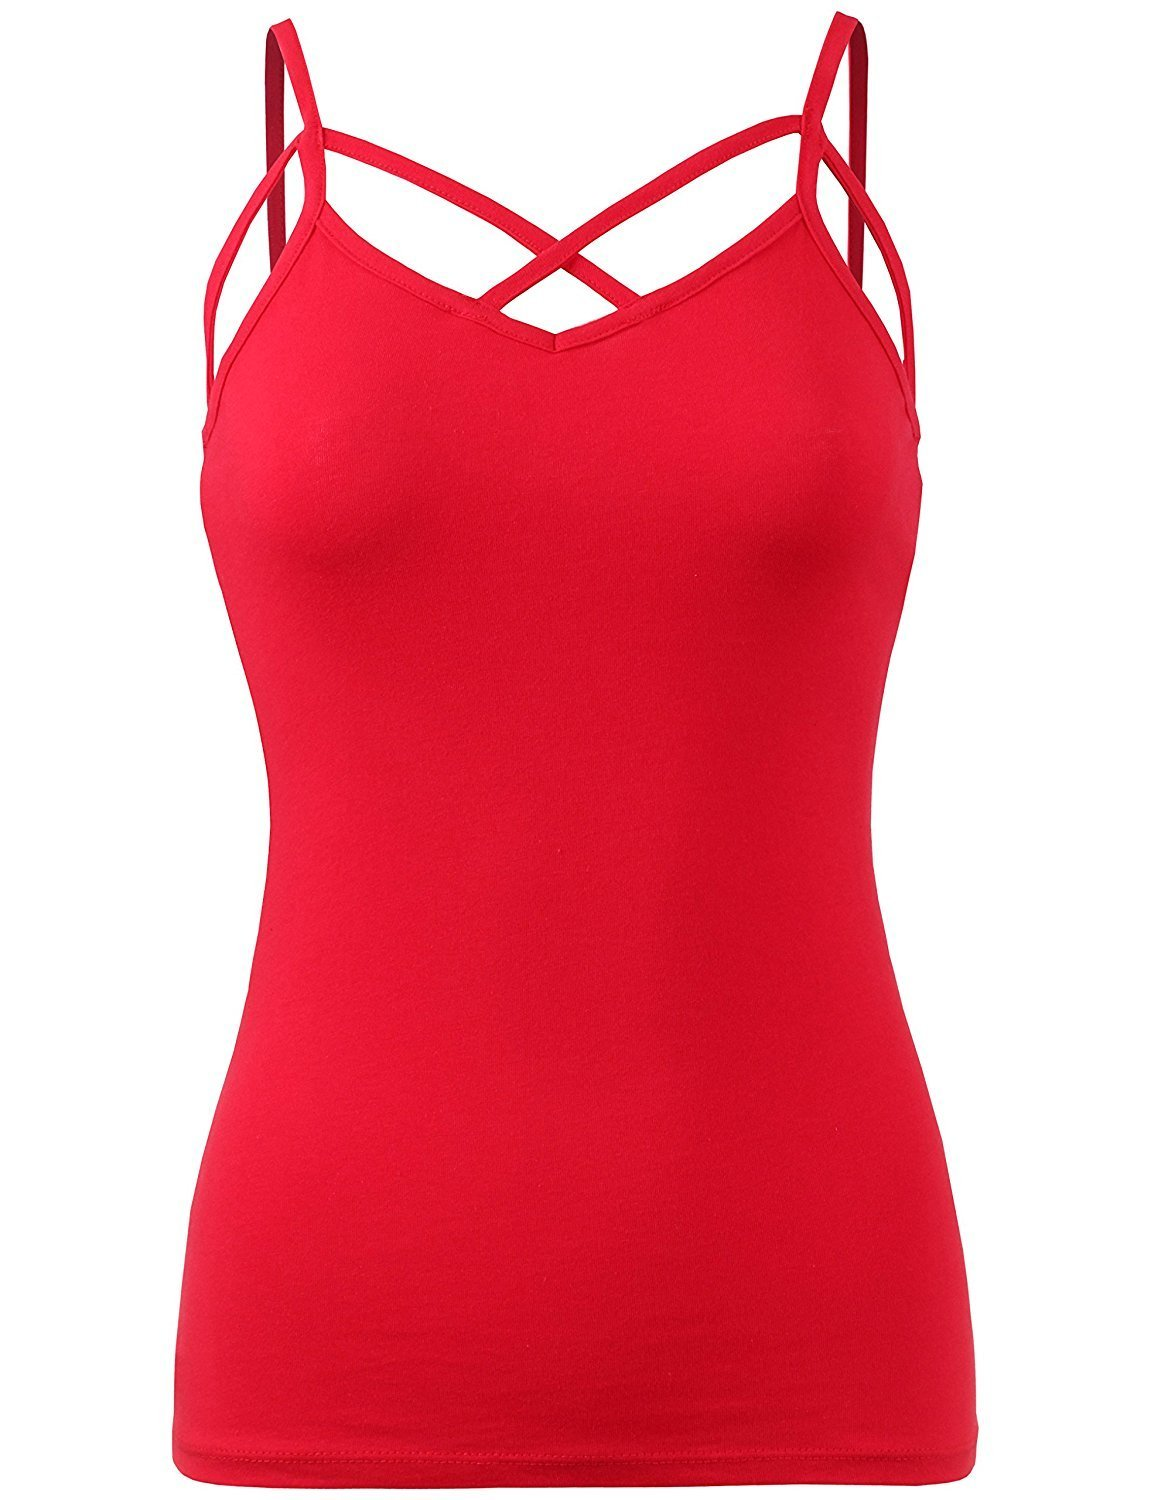 BABY-QQ Comfortable Womens Solid Casual Strappy Cutout Spaghetti Strap Cami Tank Top-L-RED Doubldowt409_redLarge